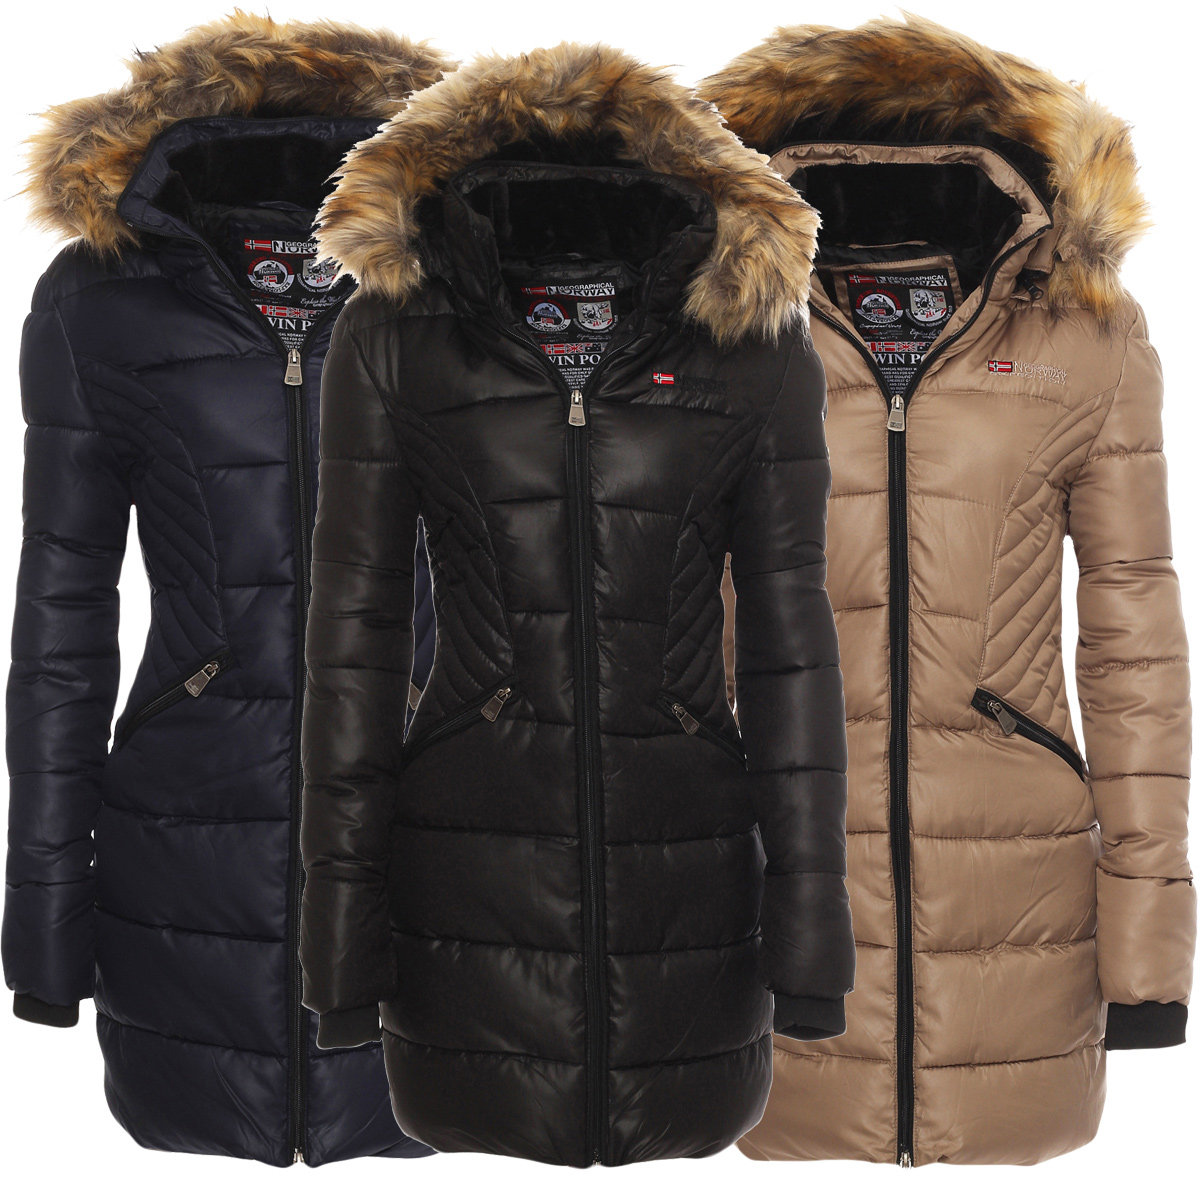 Geographical norway damen winterjacke